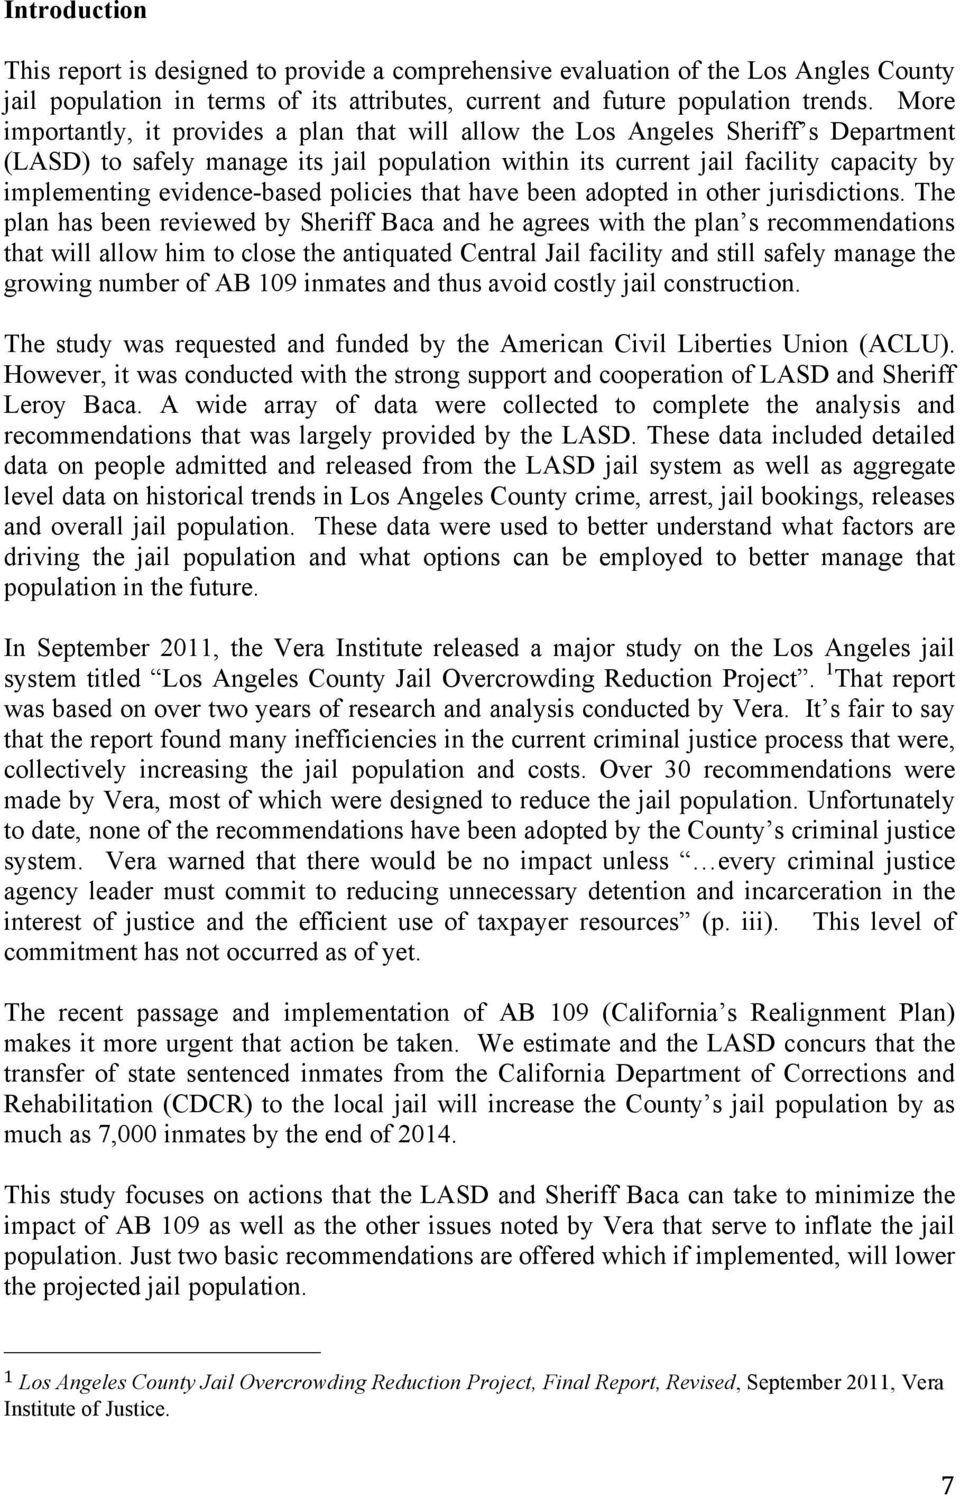 Evaluation of the Current and Future Los Angeles County Jail